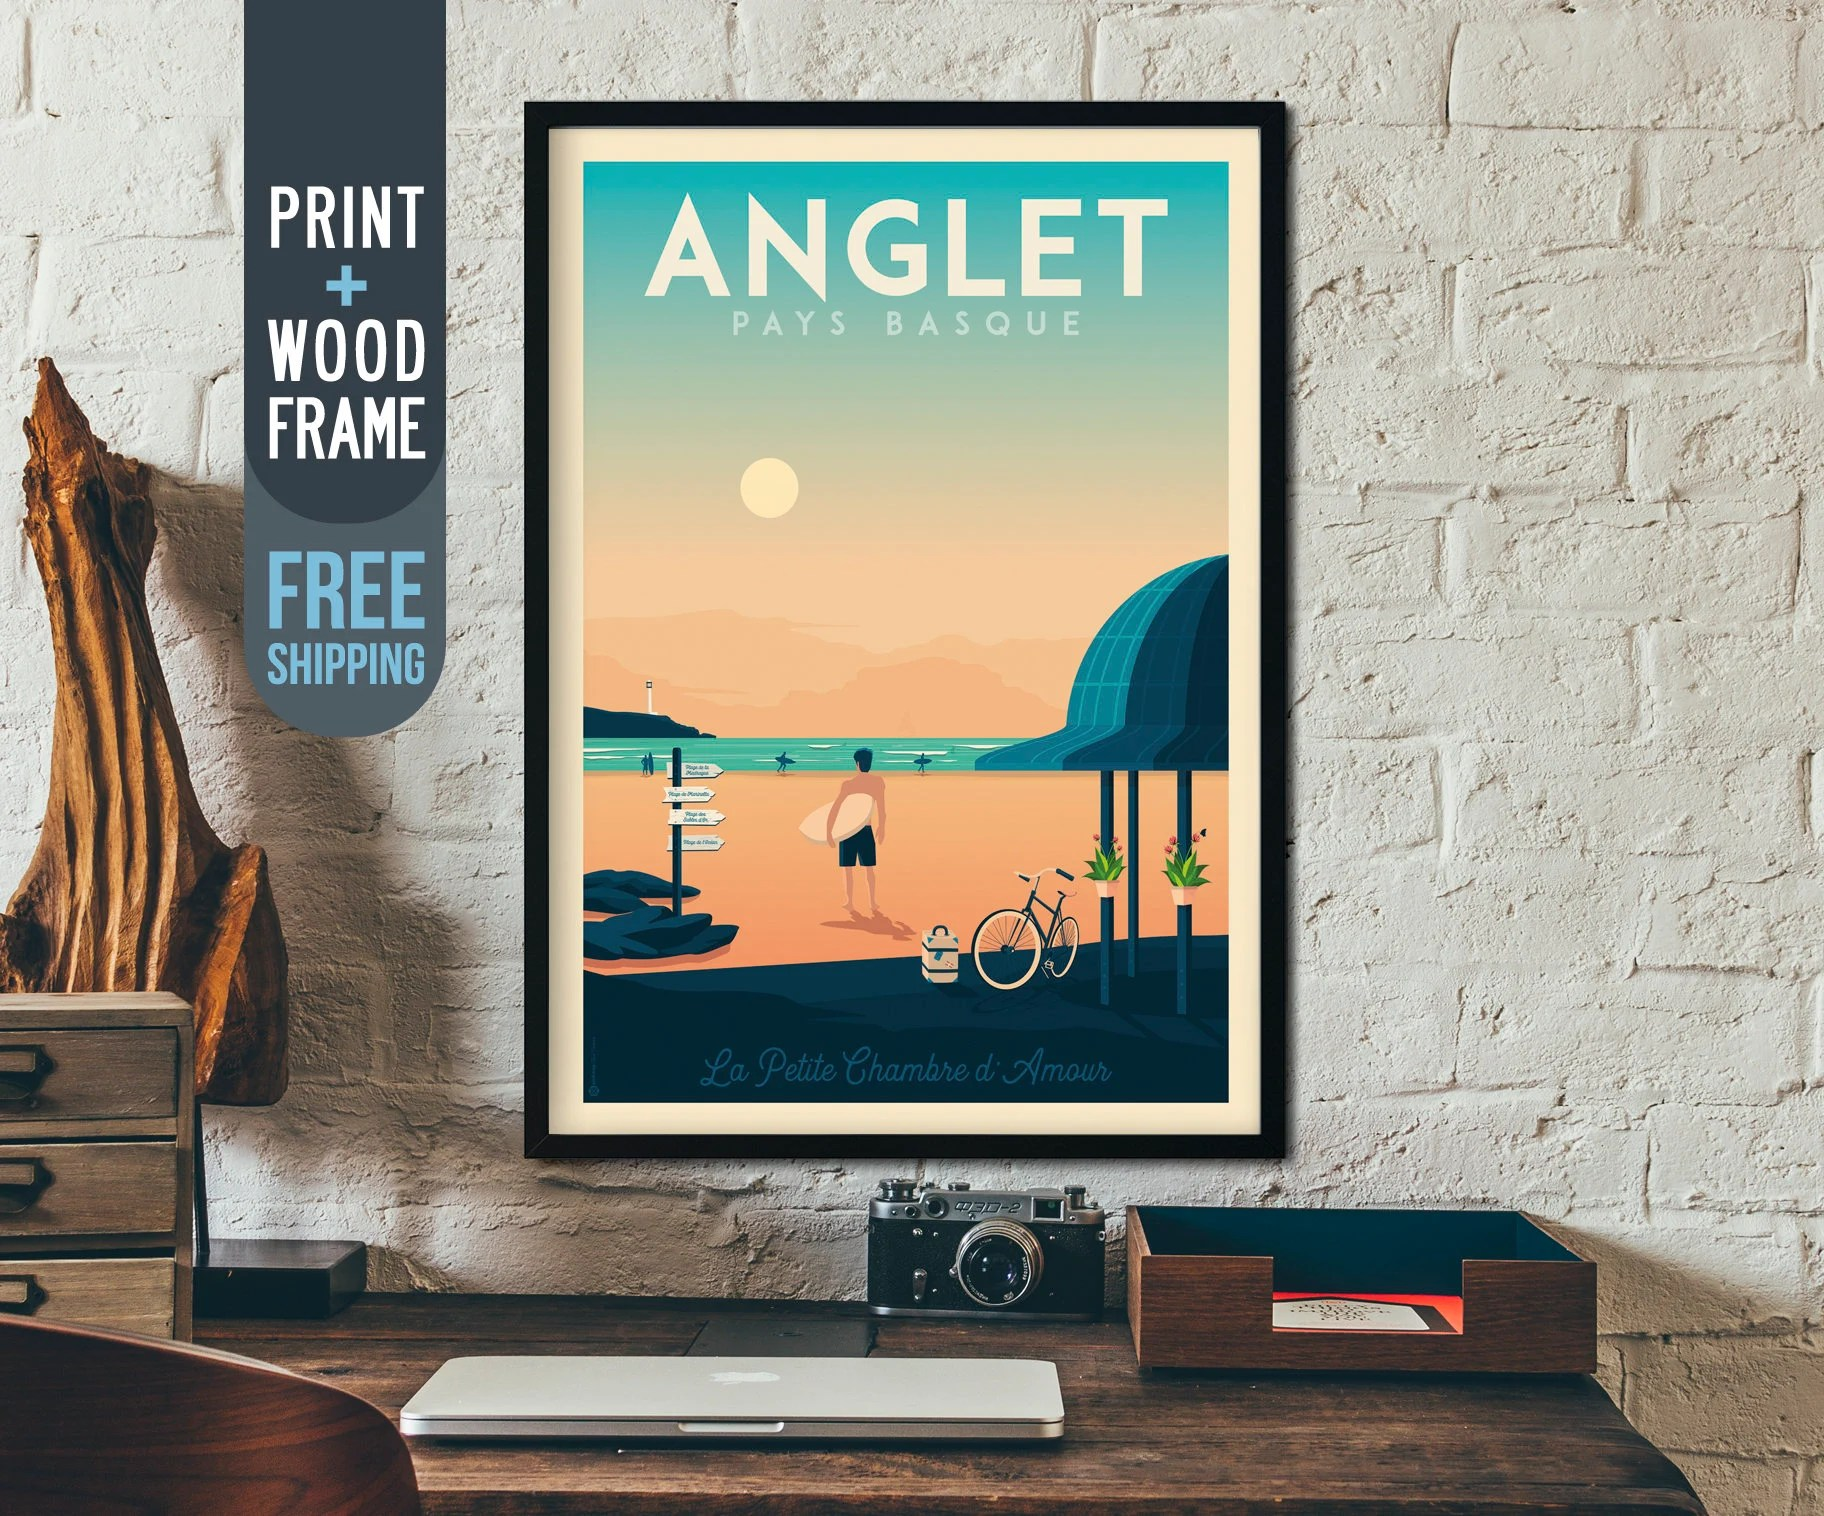 Decoration Art Deco Anglet France Travel Poster France Vintage Travel Poster